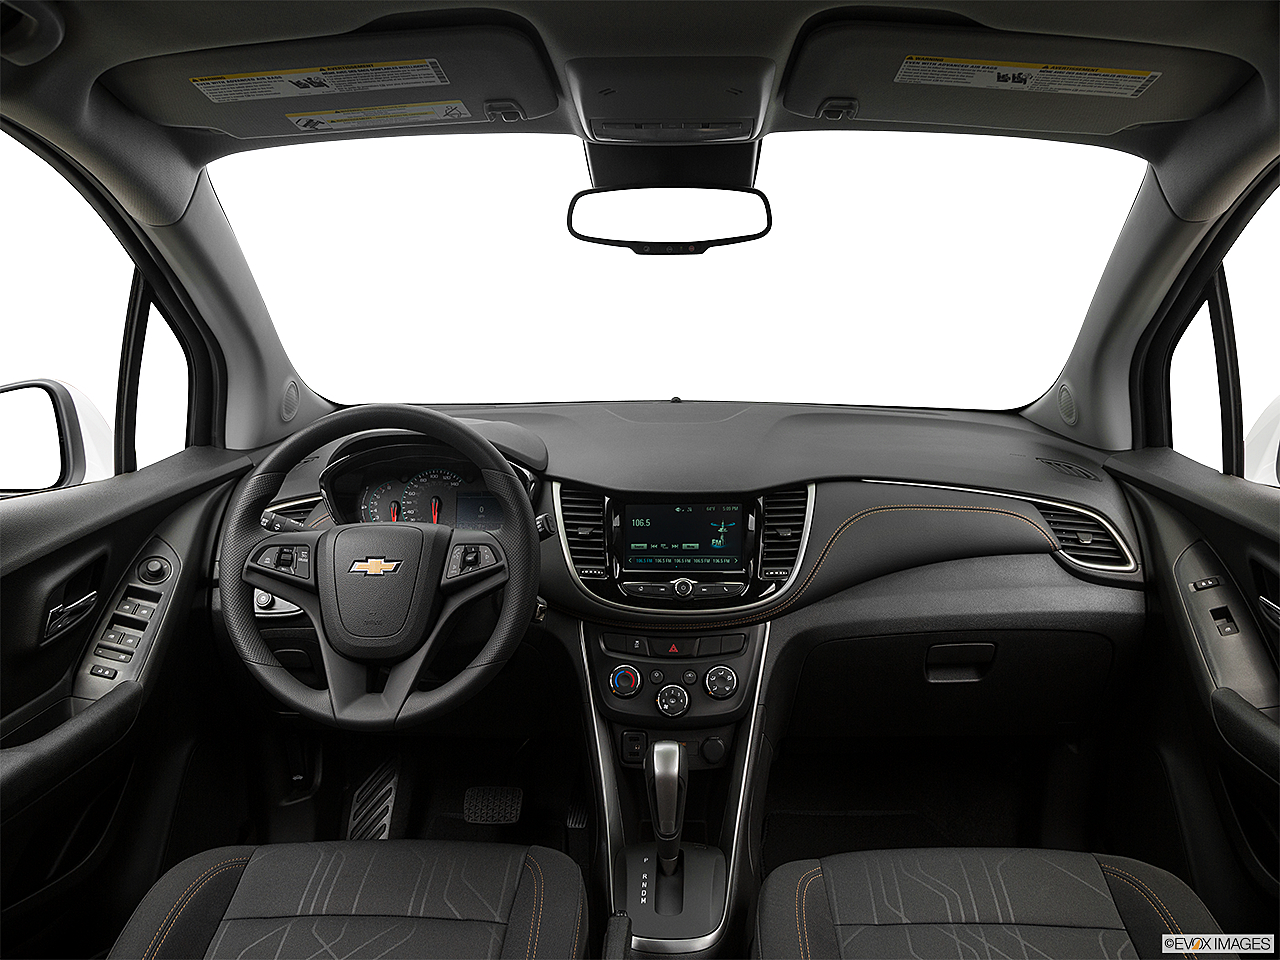 2019 Chevrolet Trax LT, centered wide dash shot